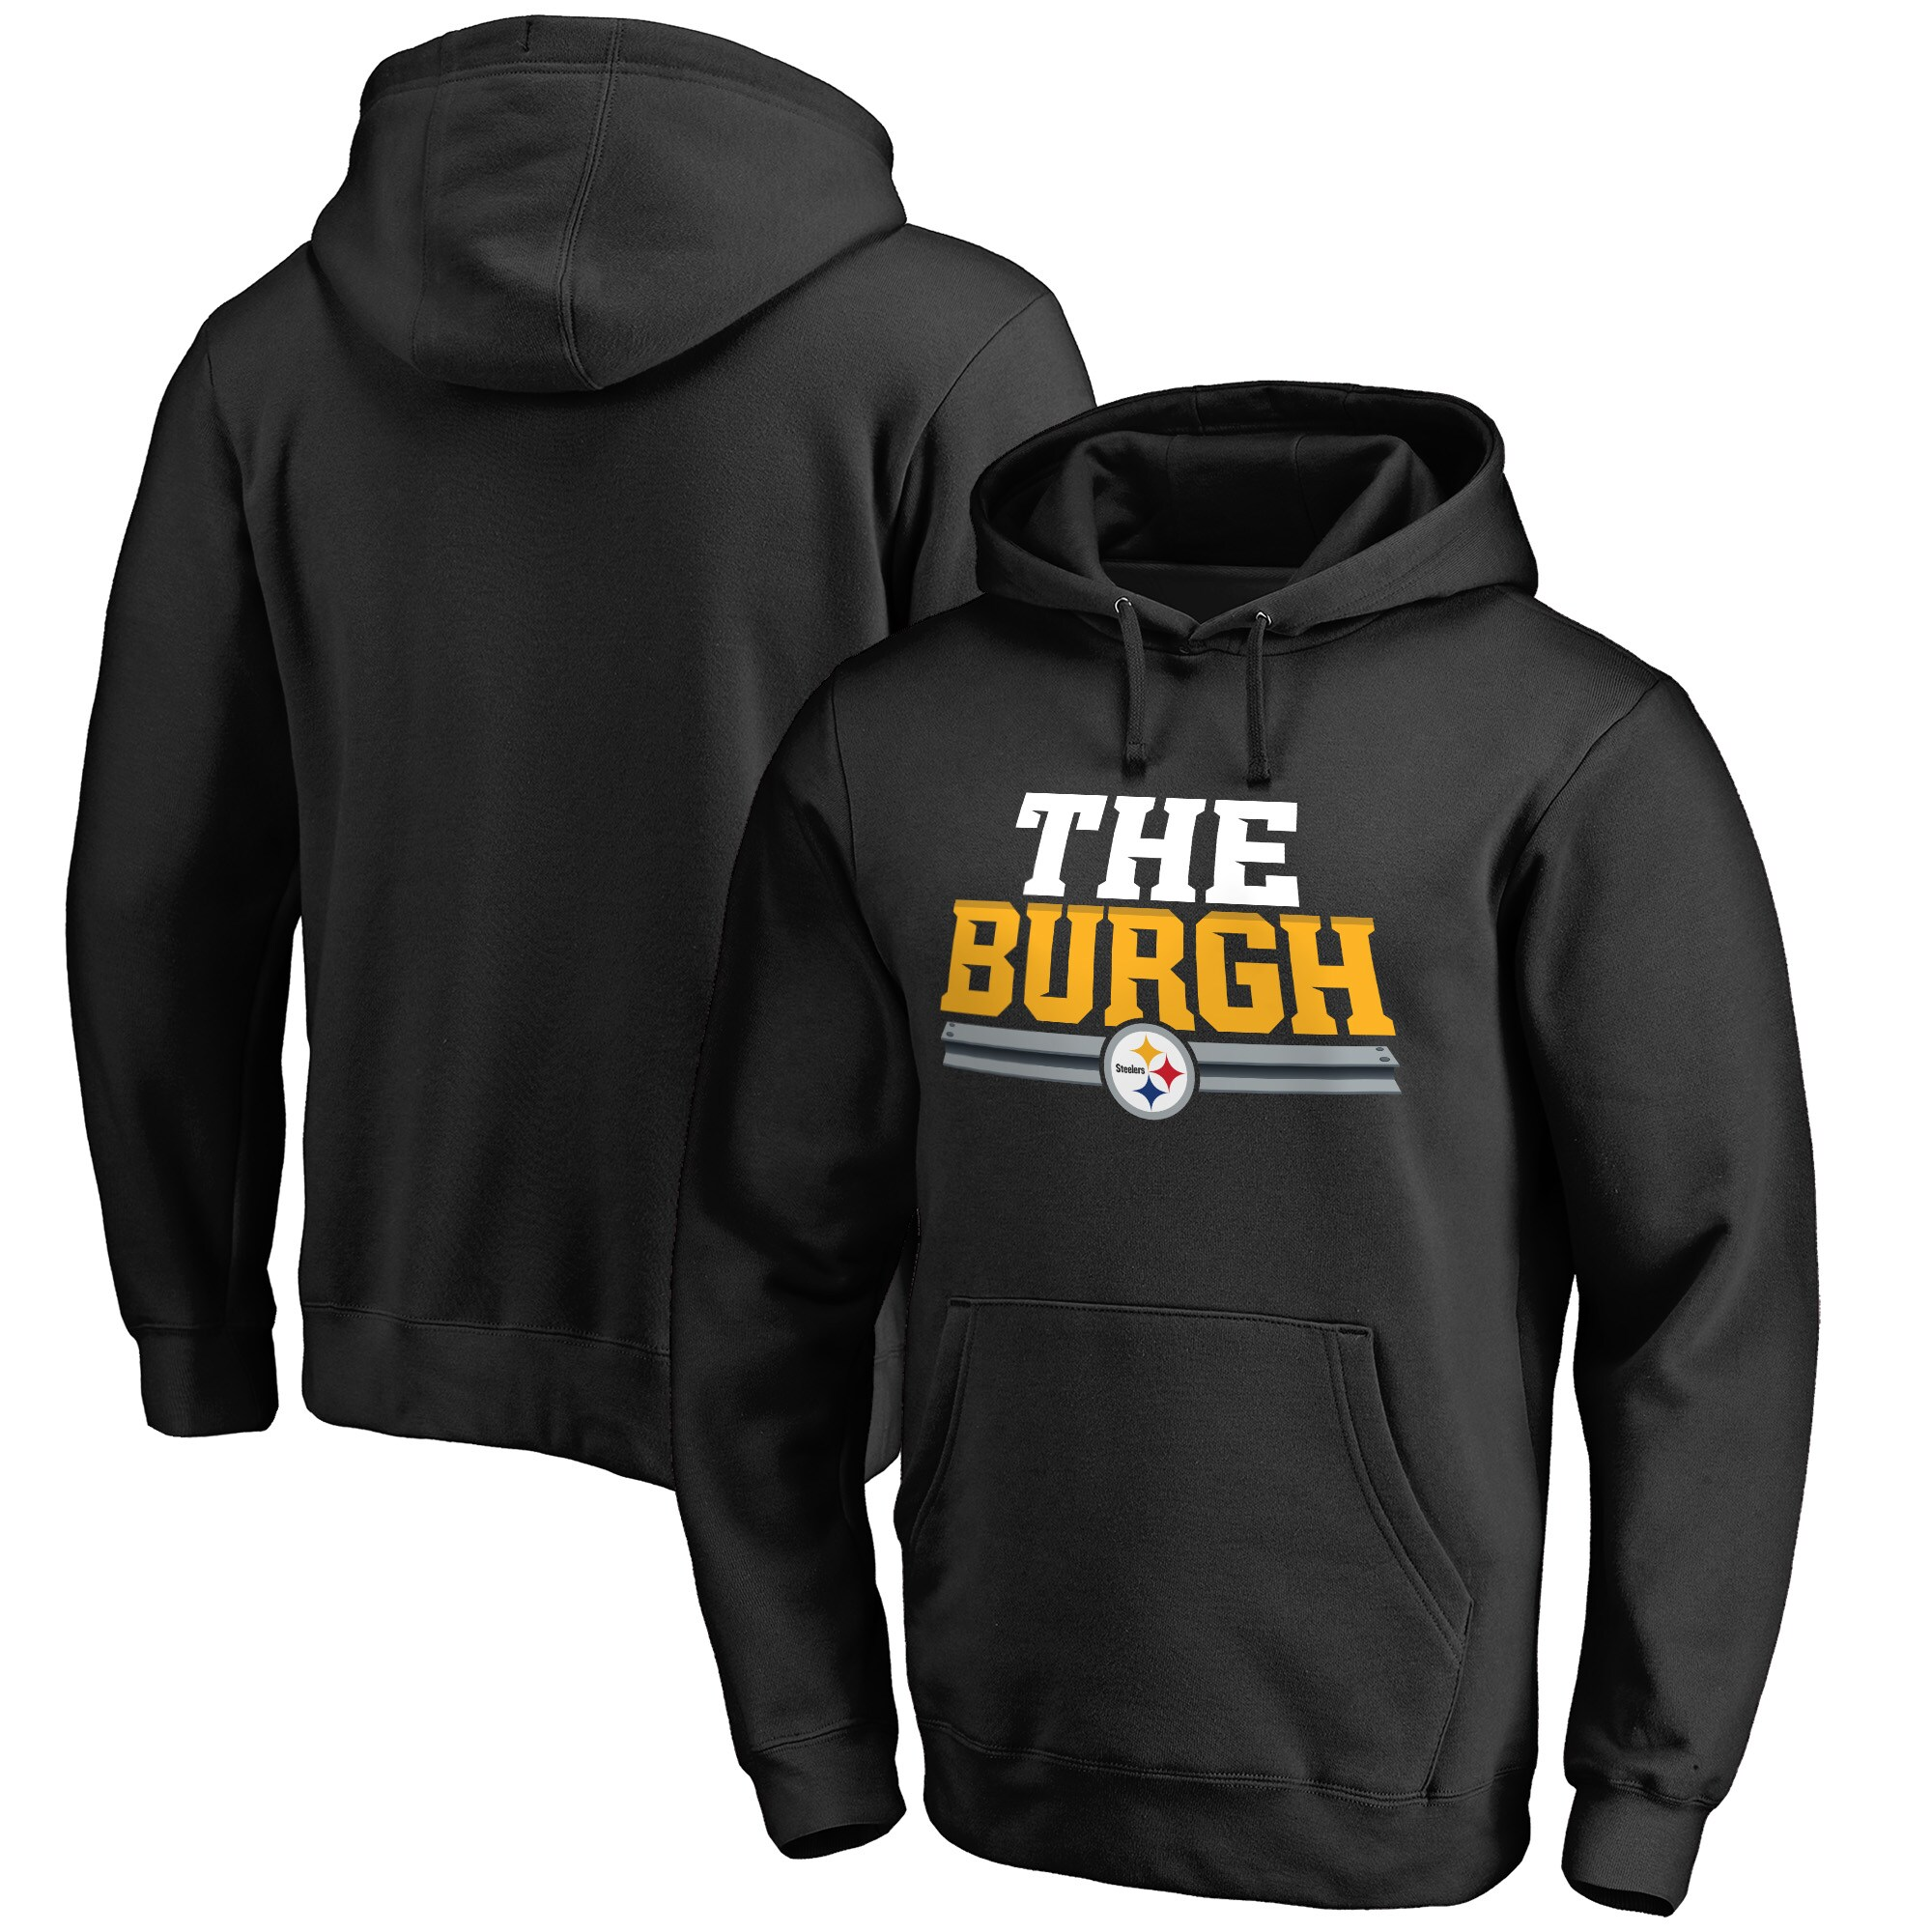 Pittsburgh Steelers NFL Pro Line Hometown Collection The Burgh Pullover Hoodie - Black